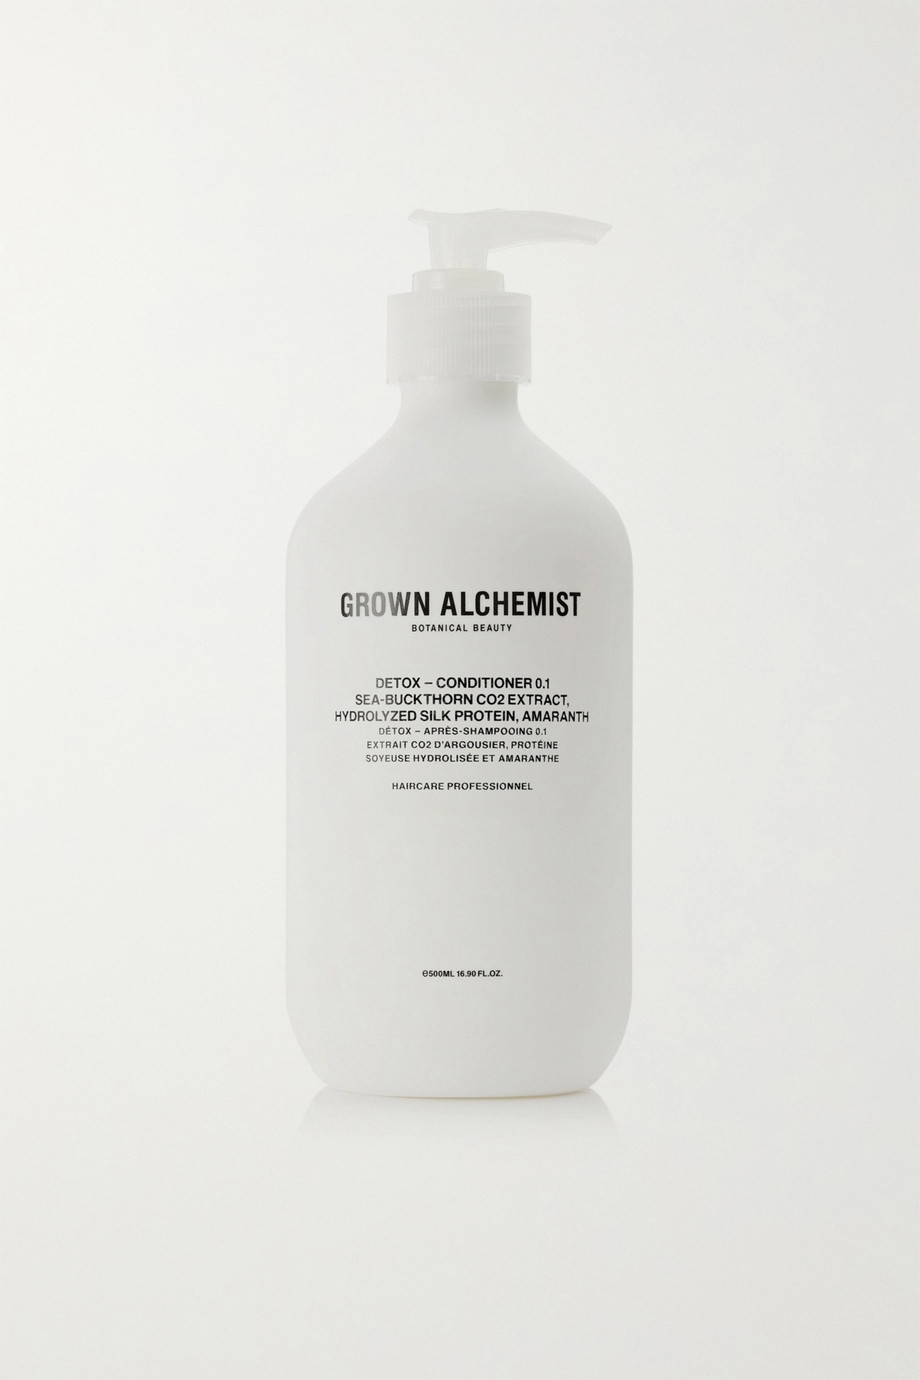 GROWN ALCHEMIST Detox - Conditioner 0.1, 500ml